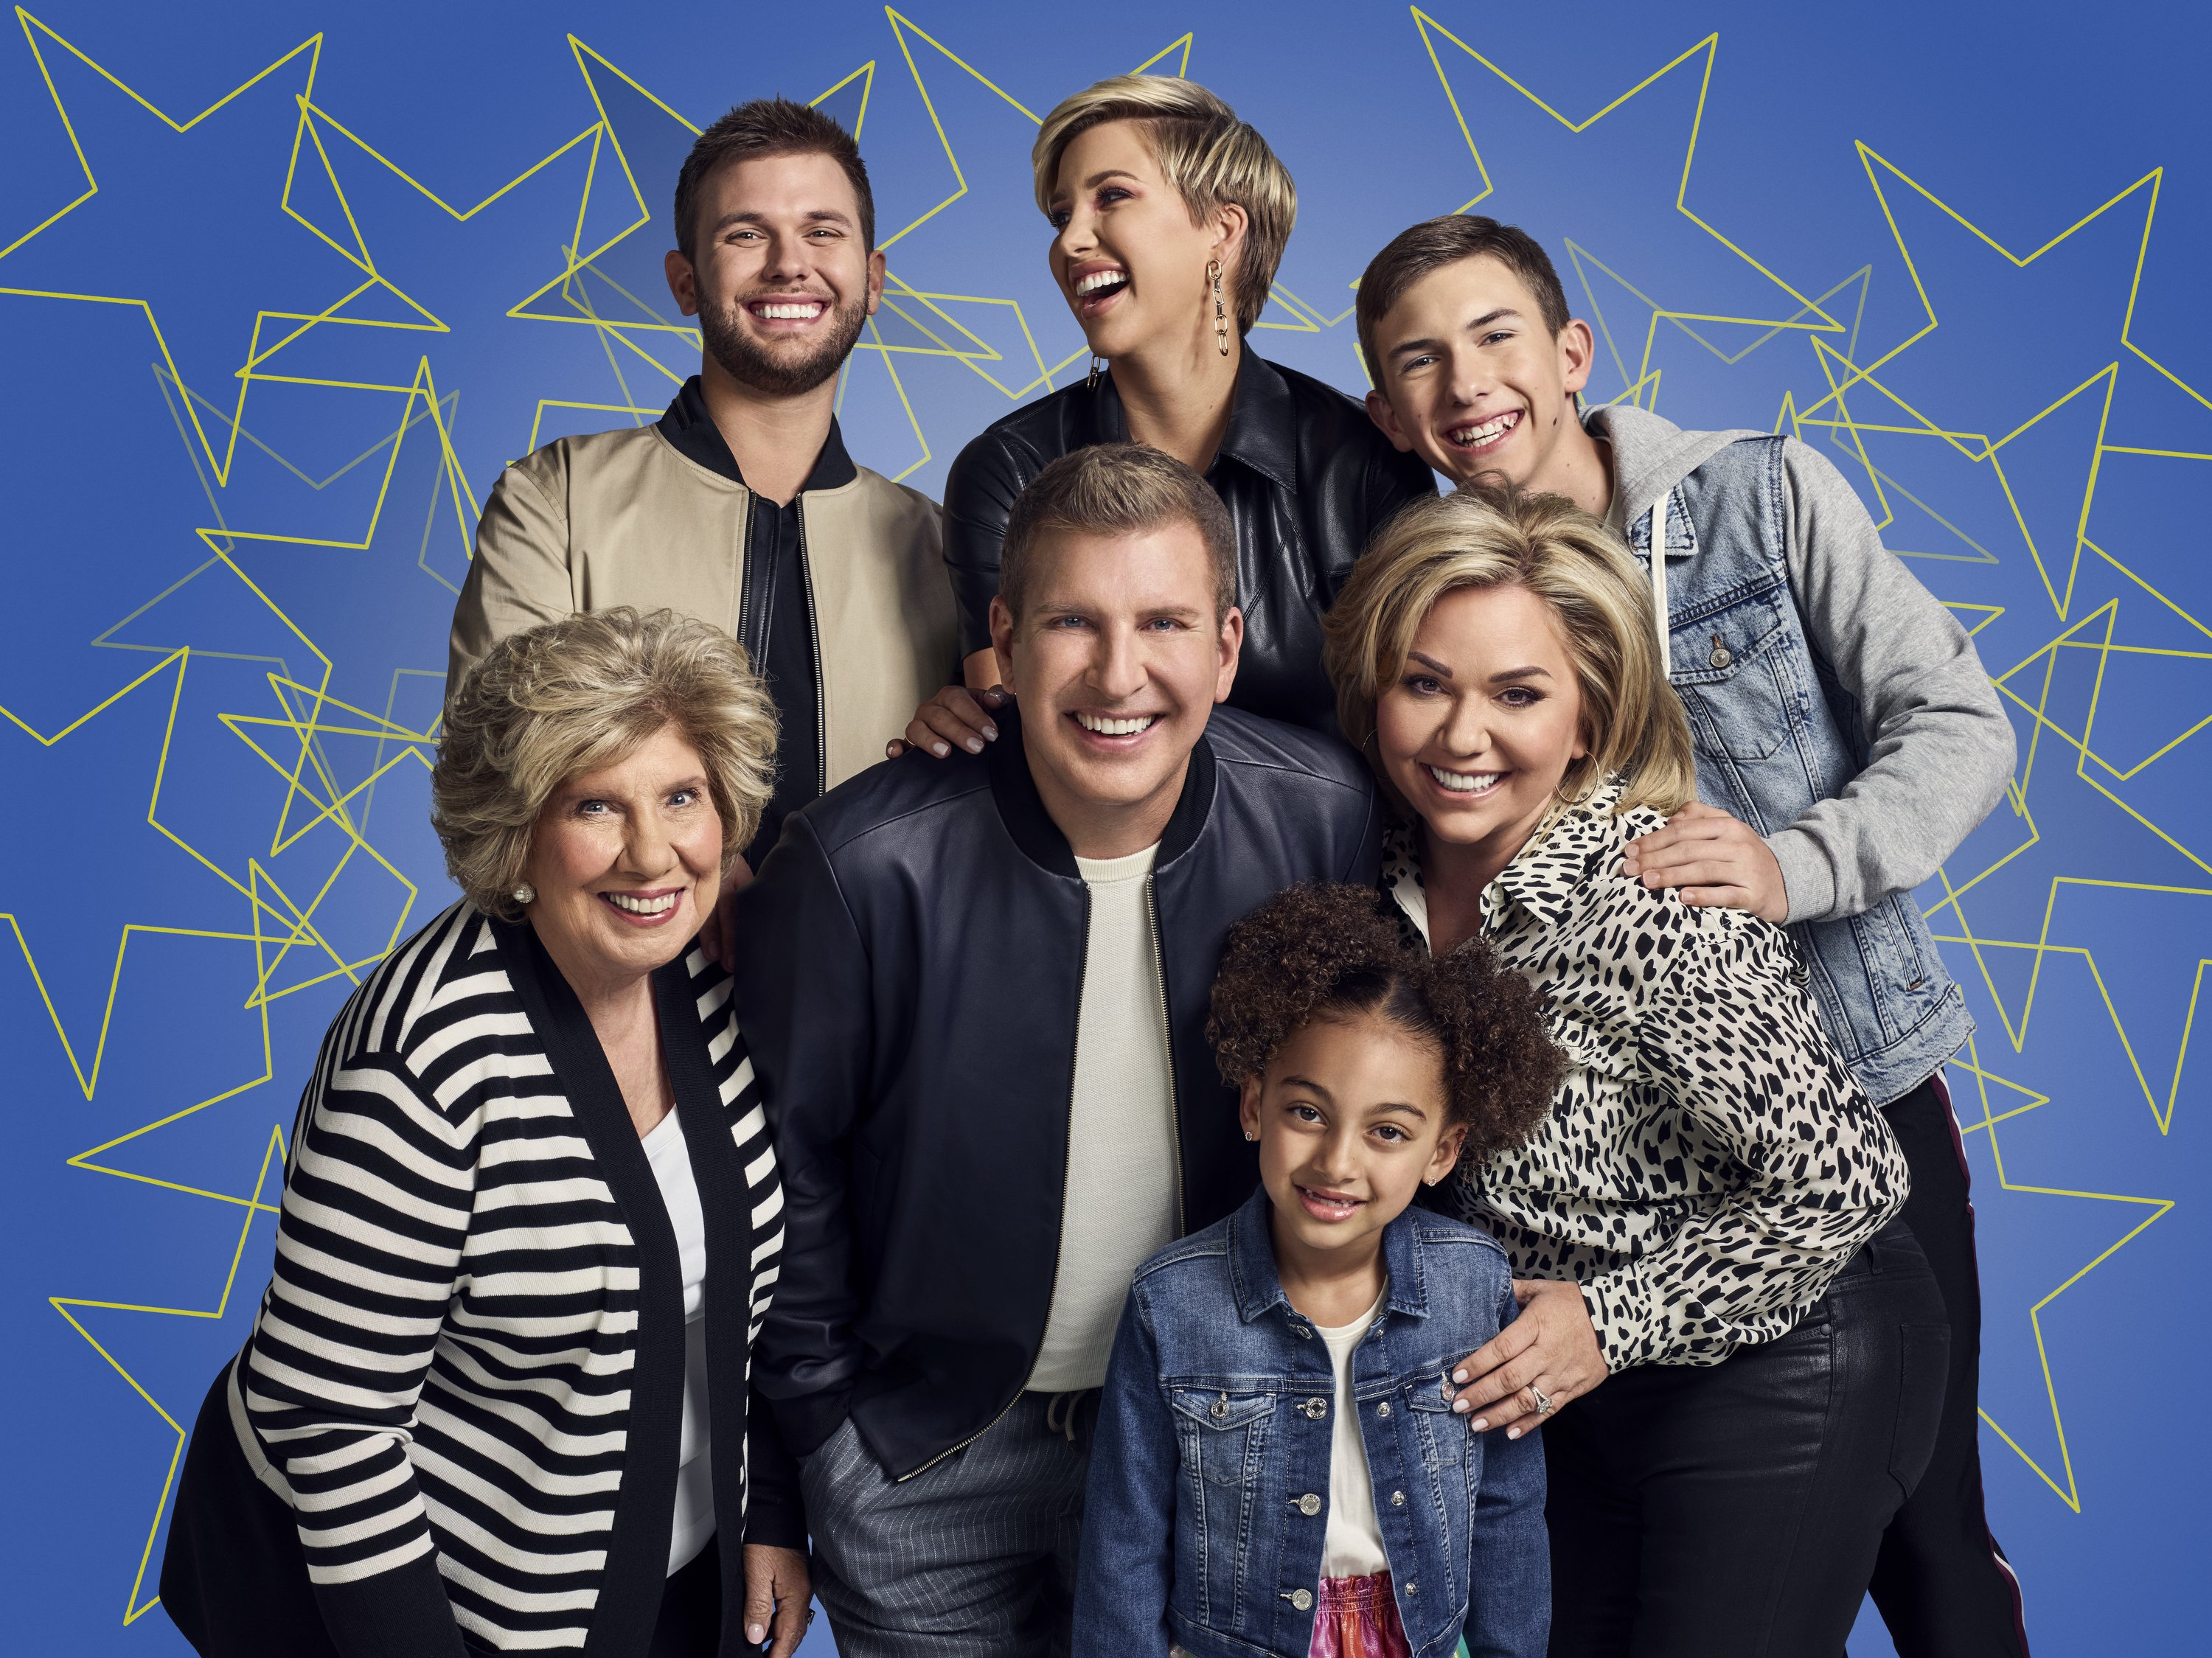 Chisley Knows Best -- Season:8 -- Pictured: (l-r) Faye Chrisley, Chase Chrisley, Todd Chrisley, Savannah Chrisley, Chloe Chrisley, Julie Chrisley, Grayson Chrisley | Photo: Getty Images